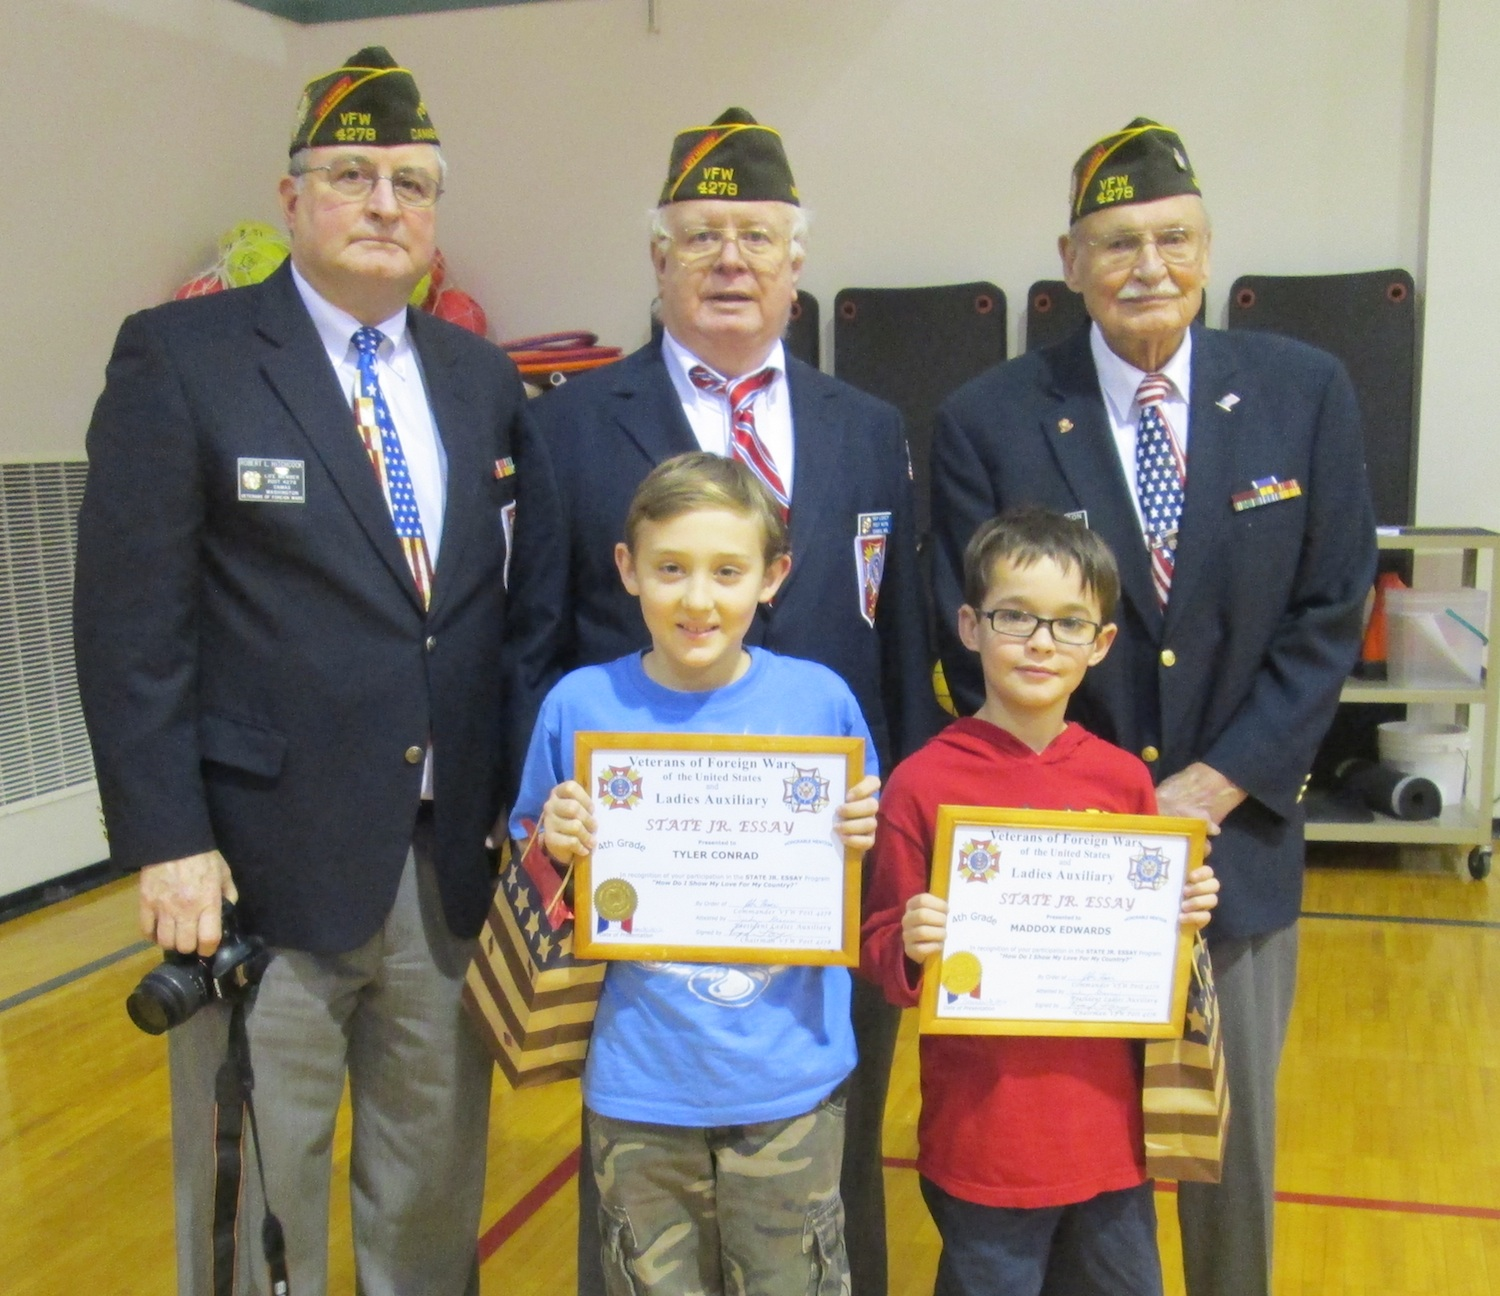 vfw essay contest The patriot's pen contest is a writing essay contest for students in the 6 the voice of democracy has been the veterans of foreign wars' youth scholarships.